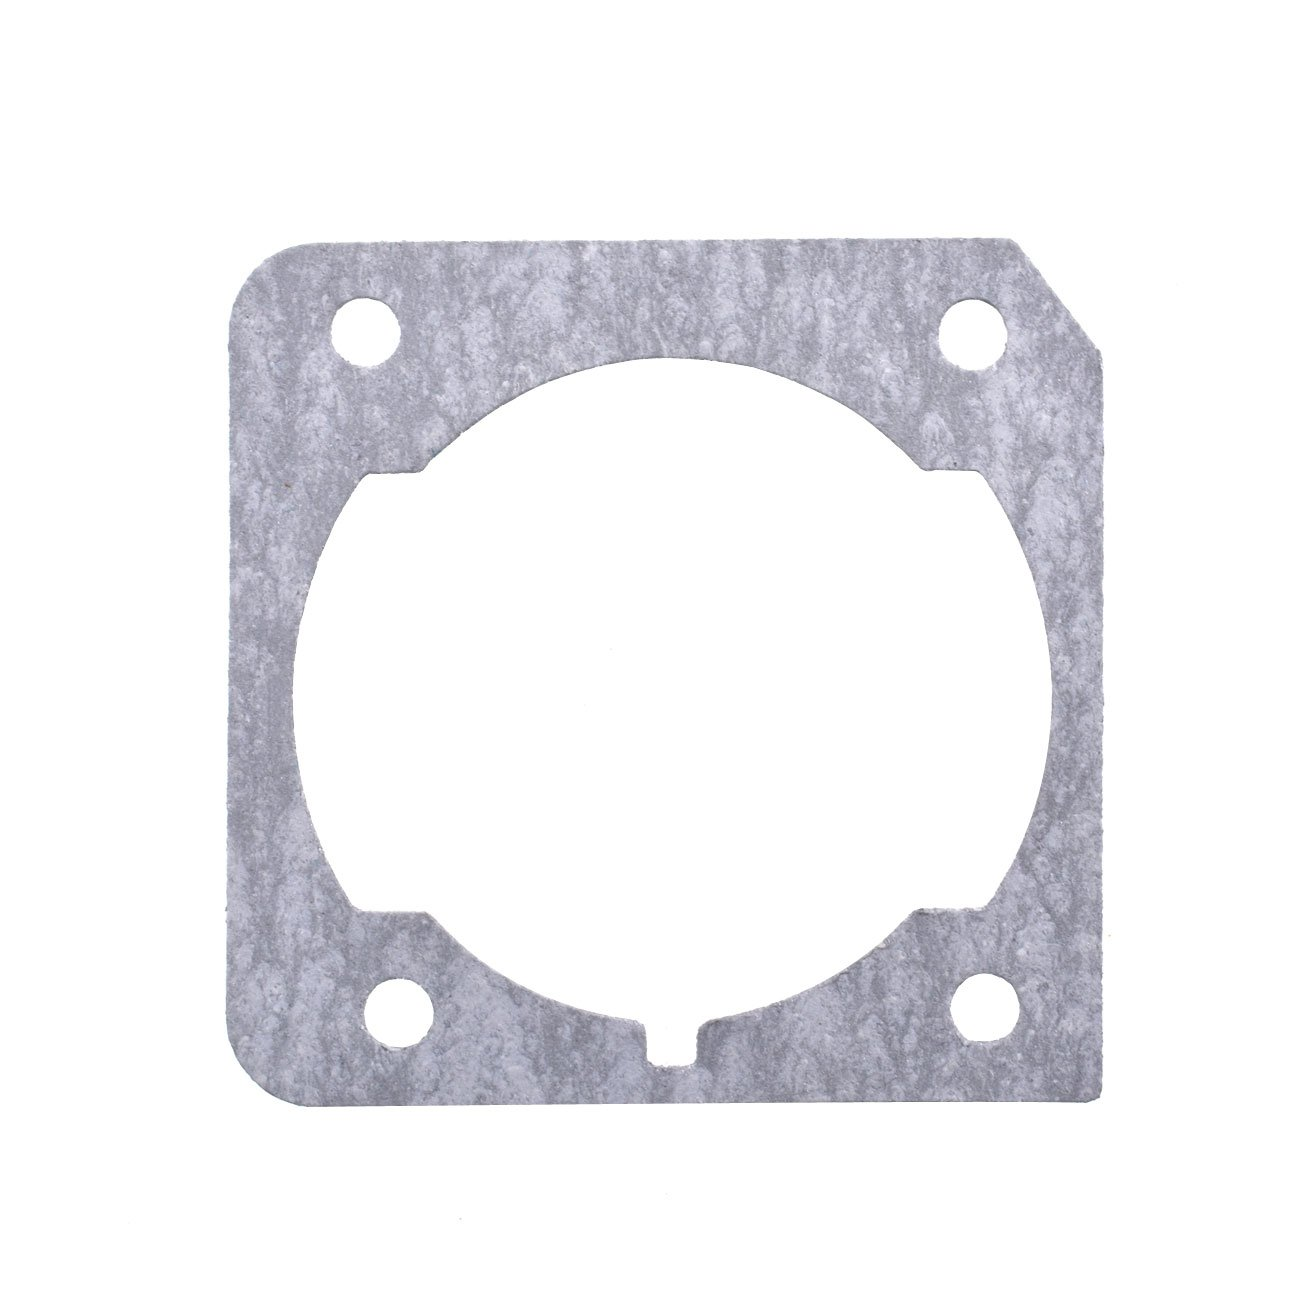 JRL Cylinder Head Base Gasket for Husqvarna 340 345 350 Chainsaw Parts Huang Machinery